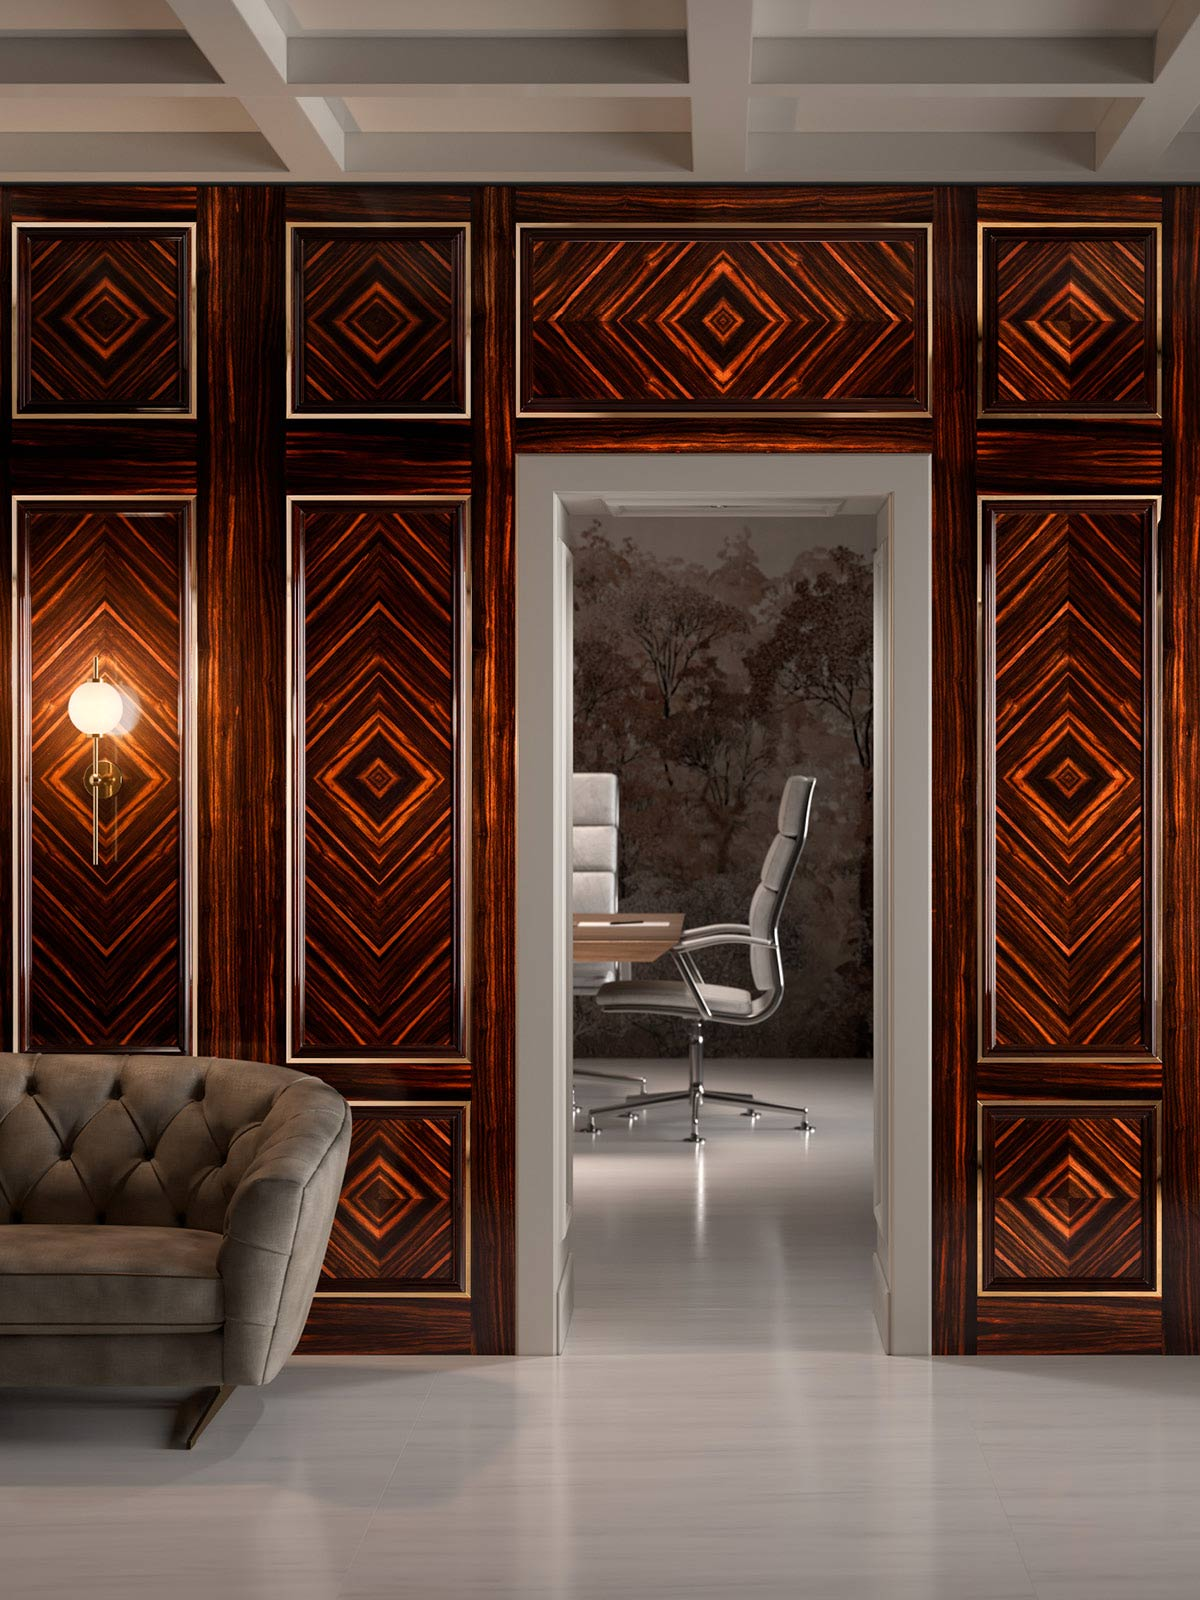 Paneling and doors in ebony with polished brass inlays